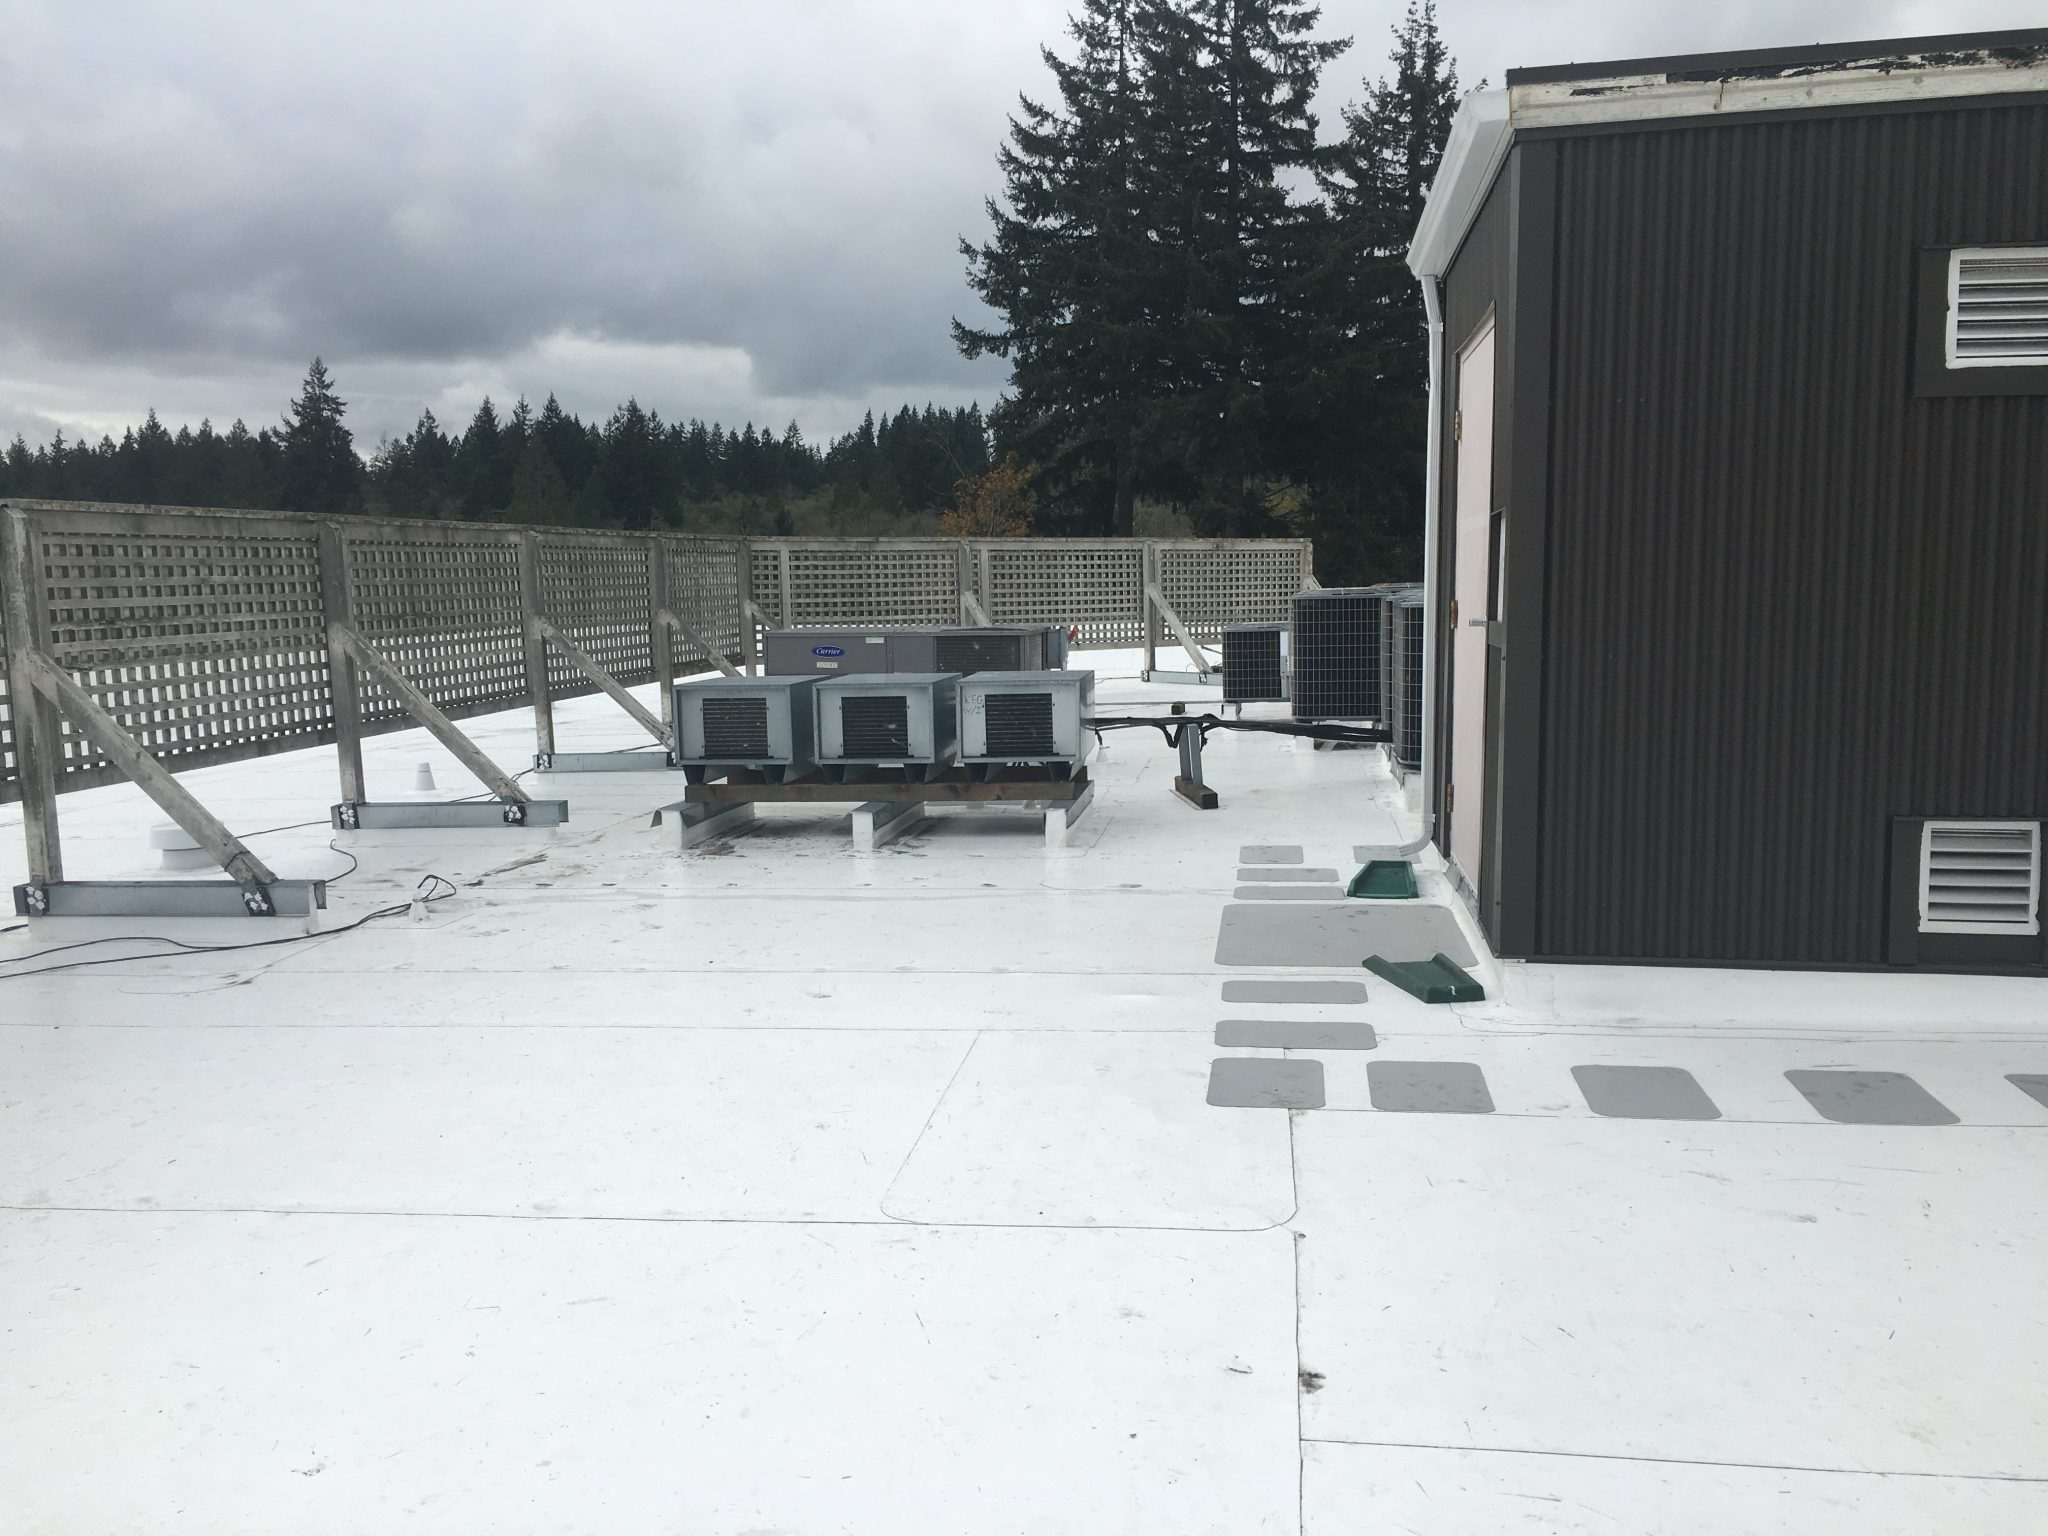 Mill Creek Commercial Flat Roof Pinnacle Roofing